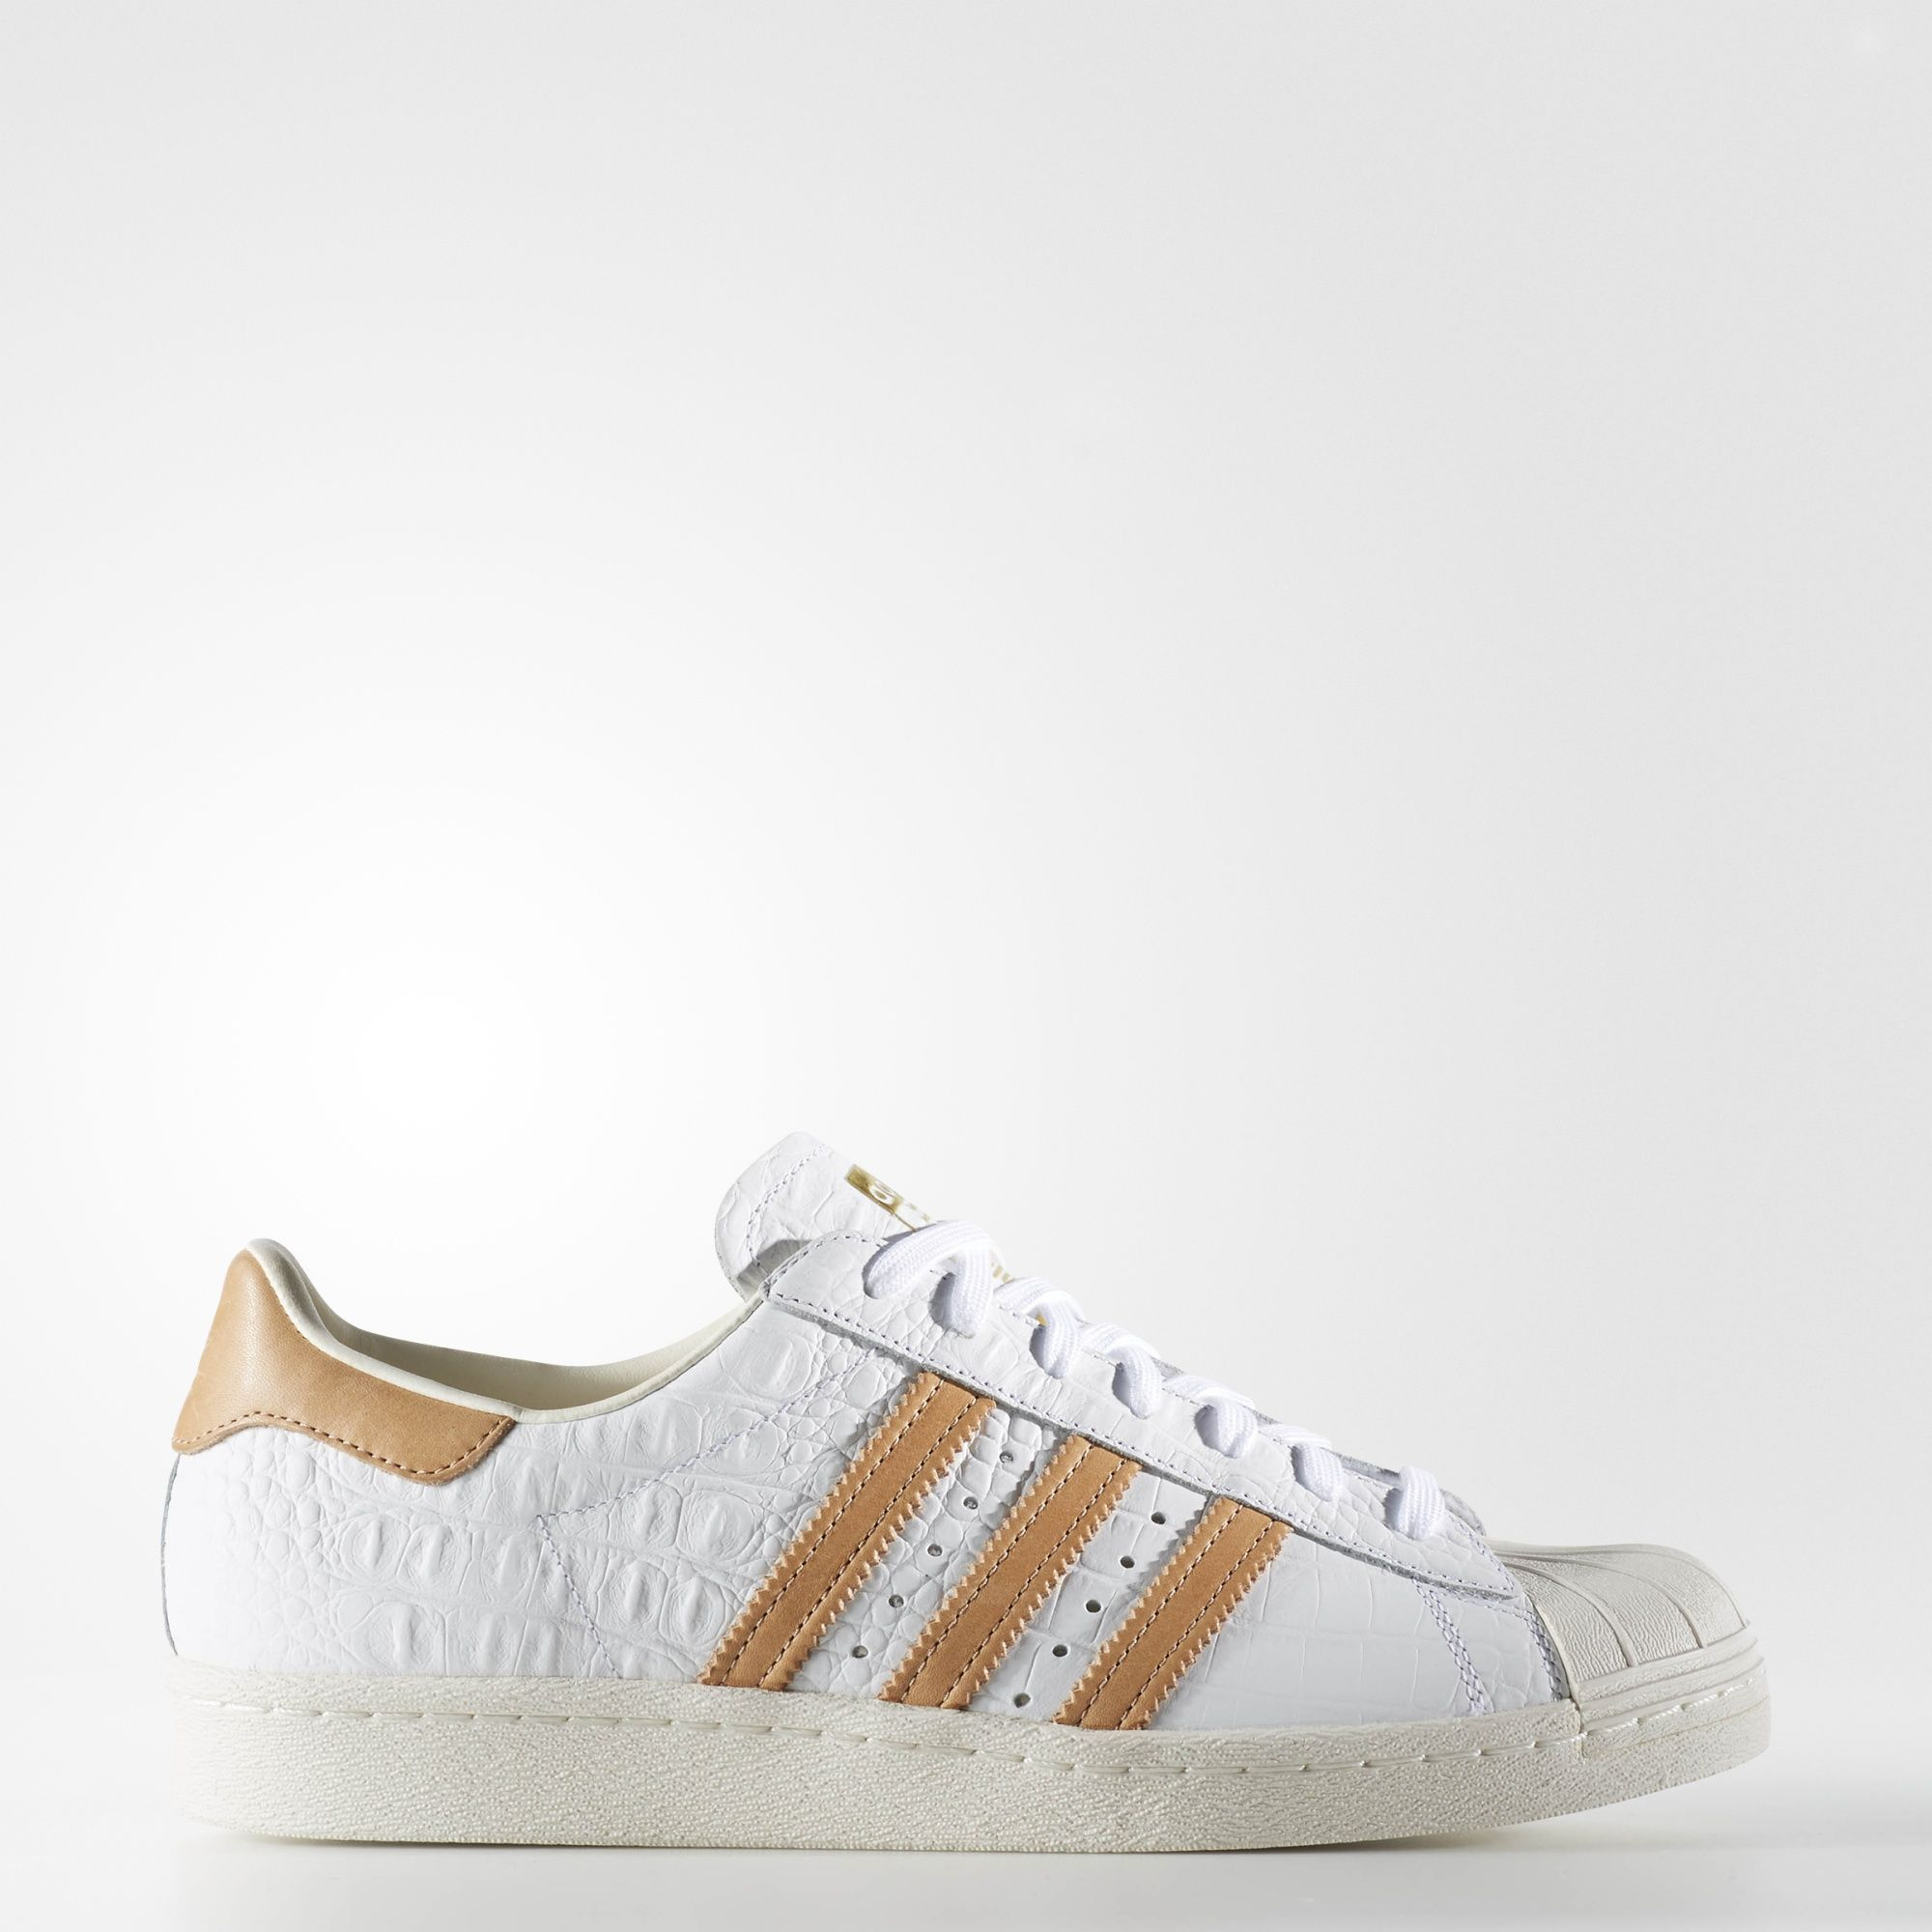 Chaussures Adidas Superstar blanches Fashion enfant D9kG7Jc9LV